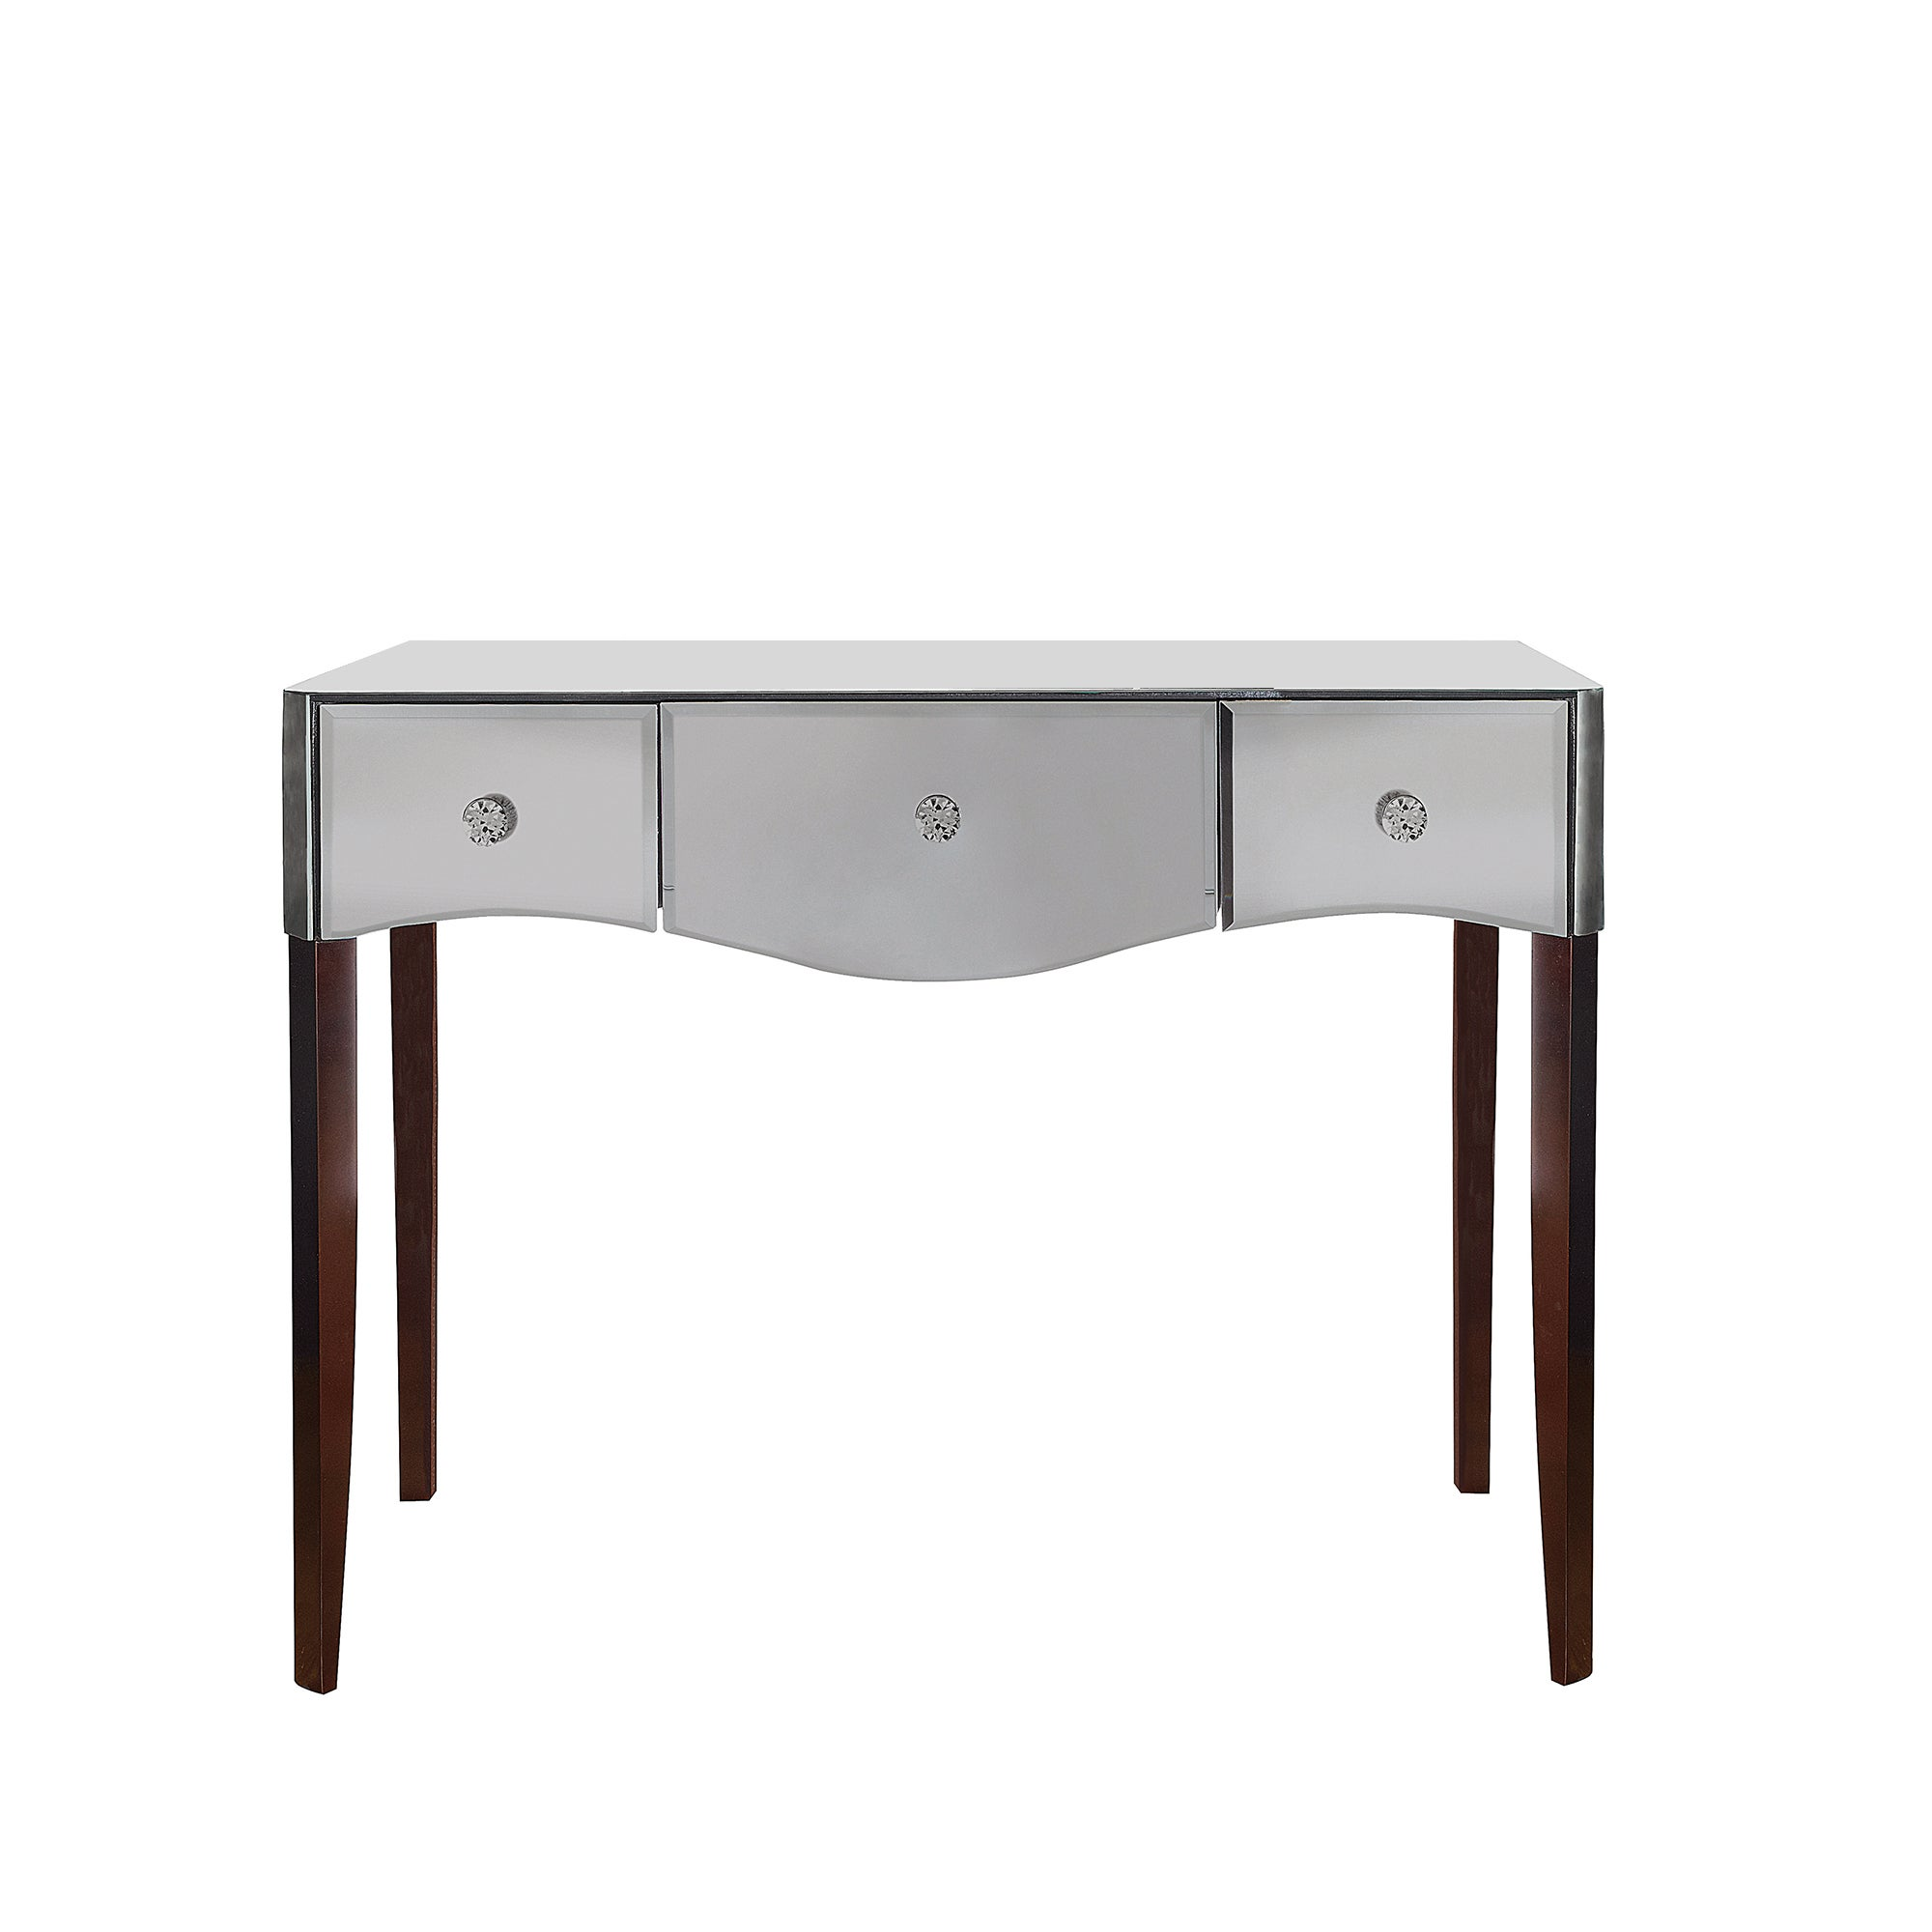 Photo of Viola smoke mirrored dressing table charcoal